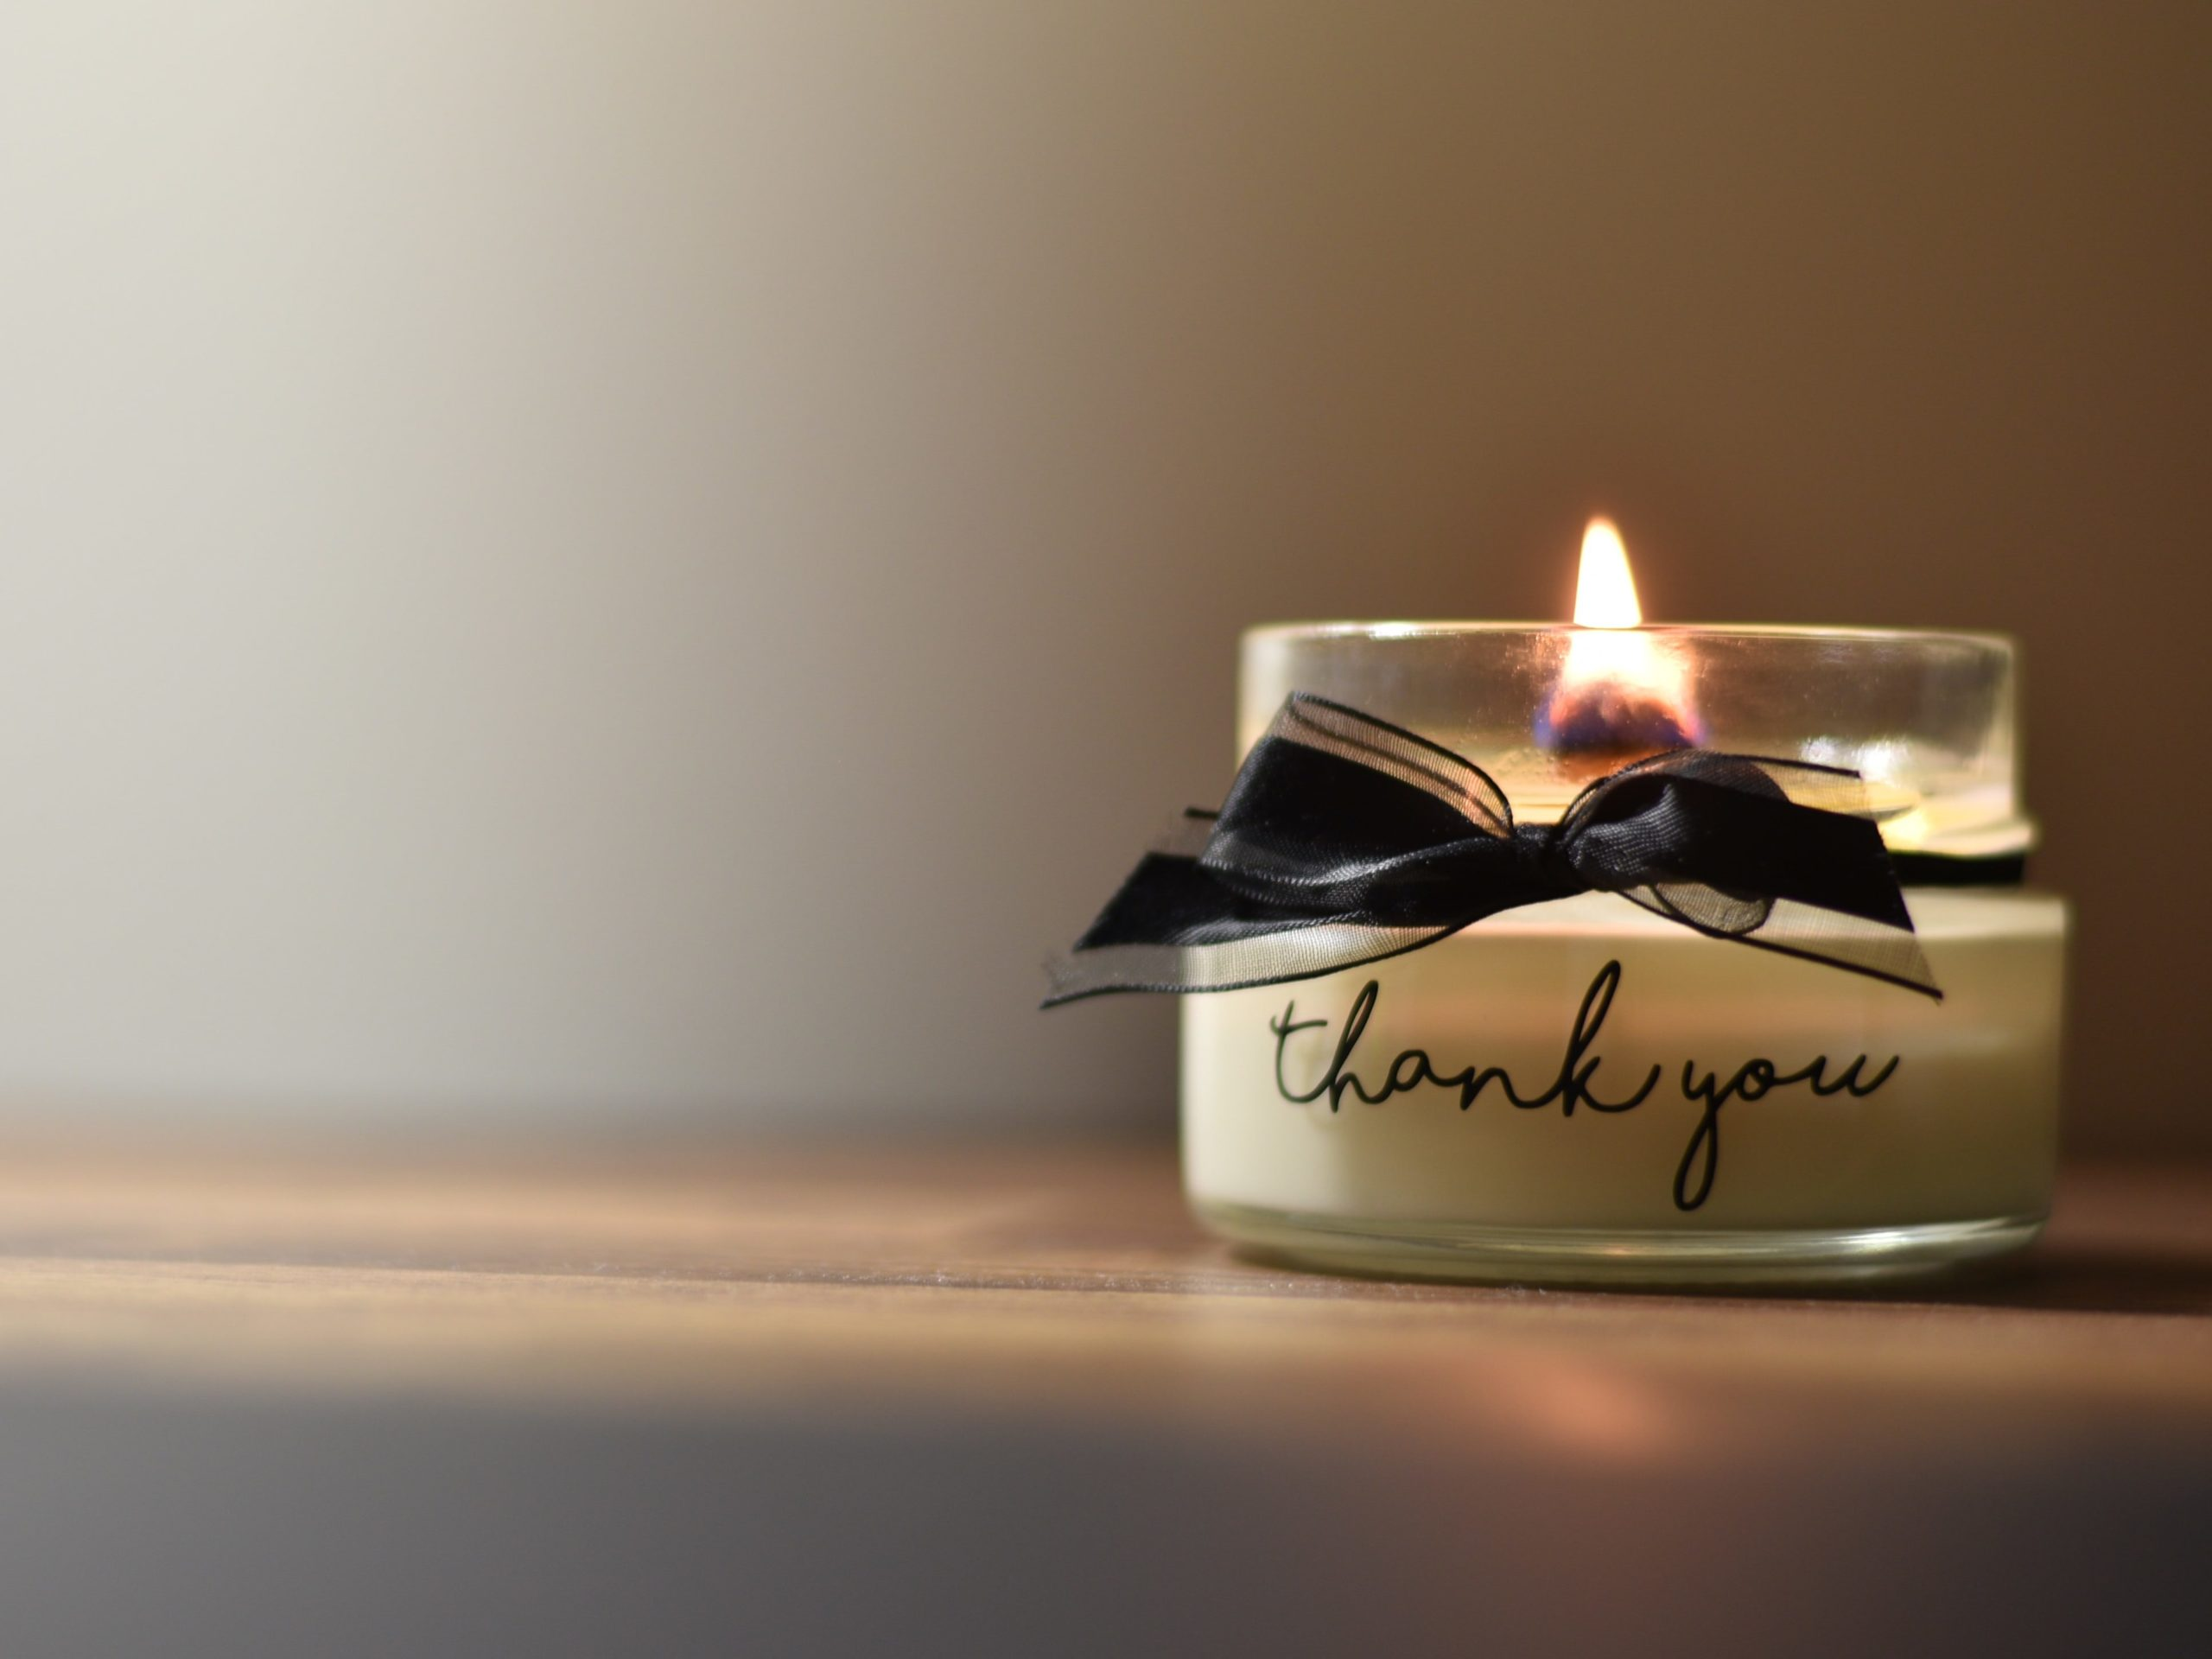 candle that is burning. Scents are important for good feng shui.